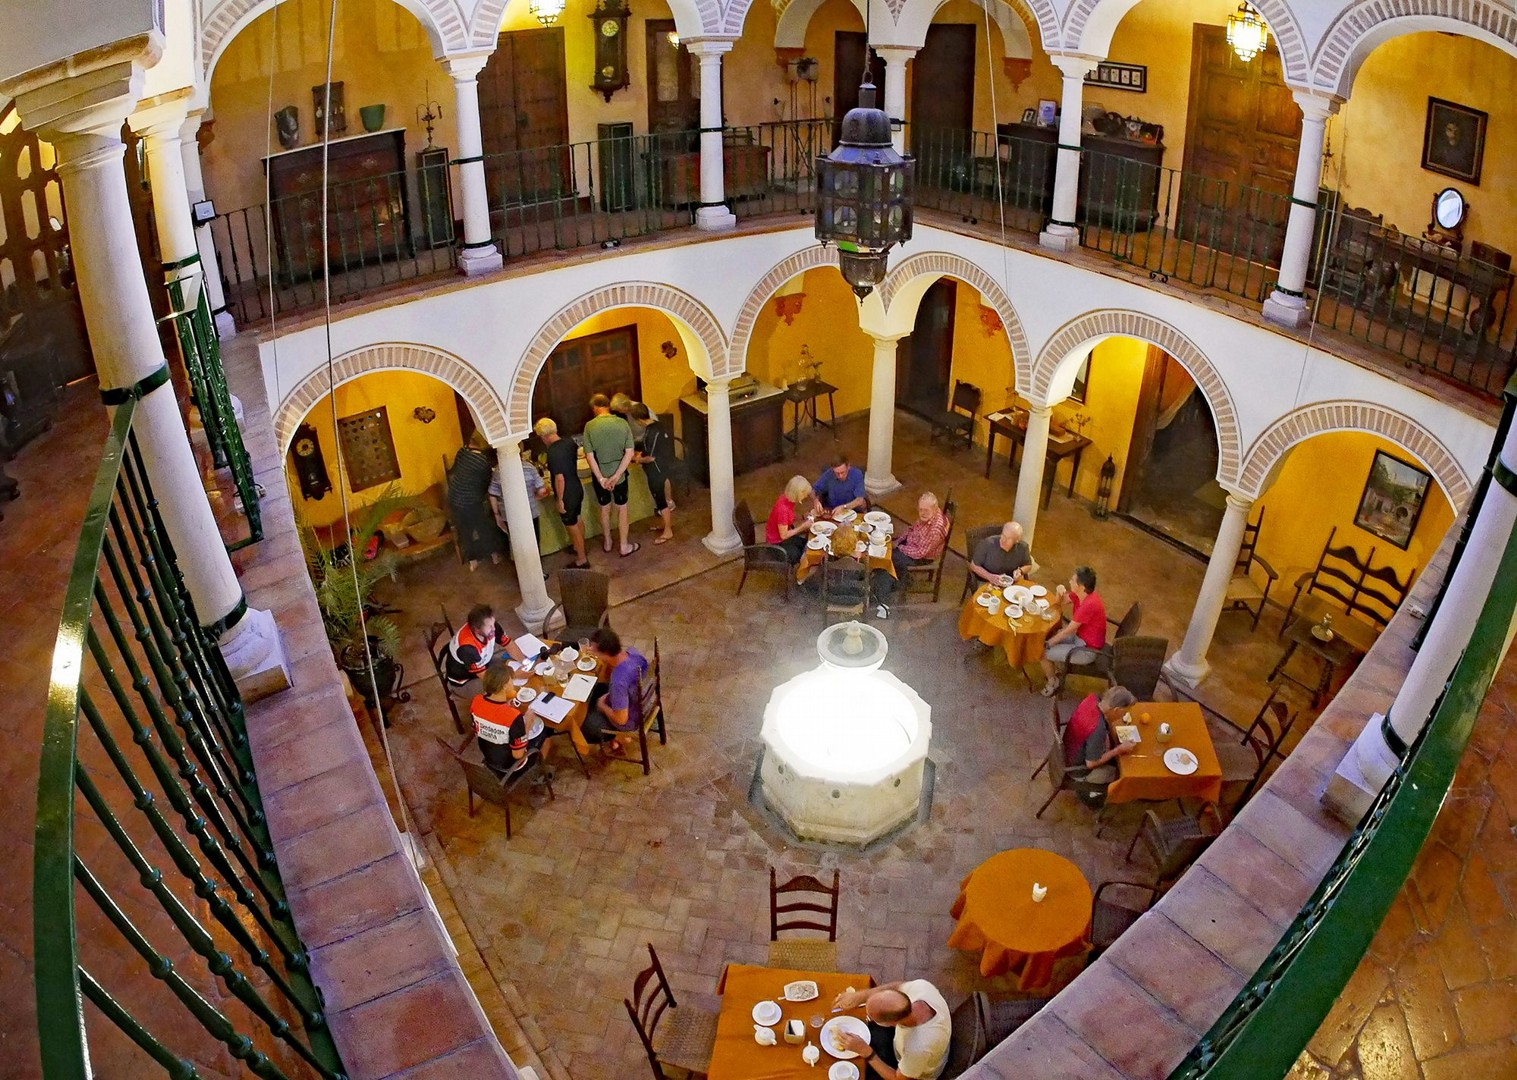 cycling-holiday-in-spain-granada-to-seville-leisure-cycling.jpg - Southern Spain - Granada to Seville - Self-Guided Leisure Cycling Holiday - Leisure Cycling